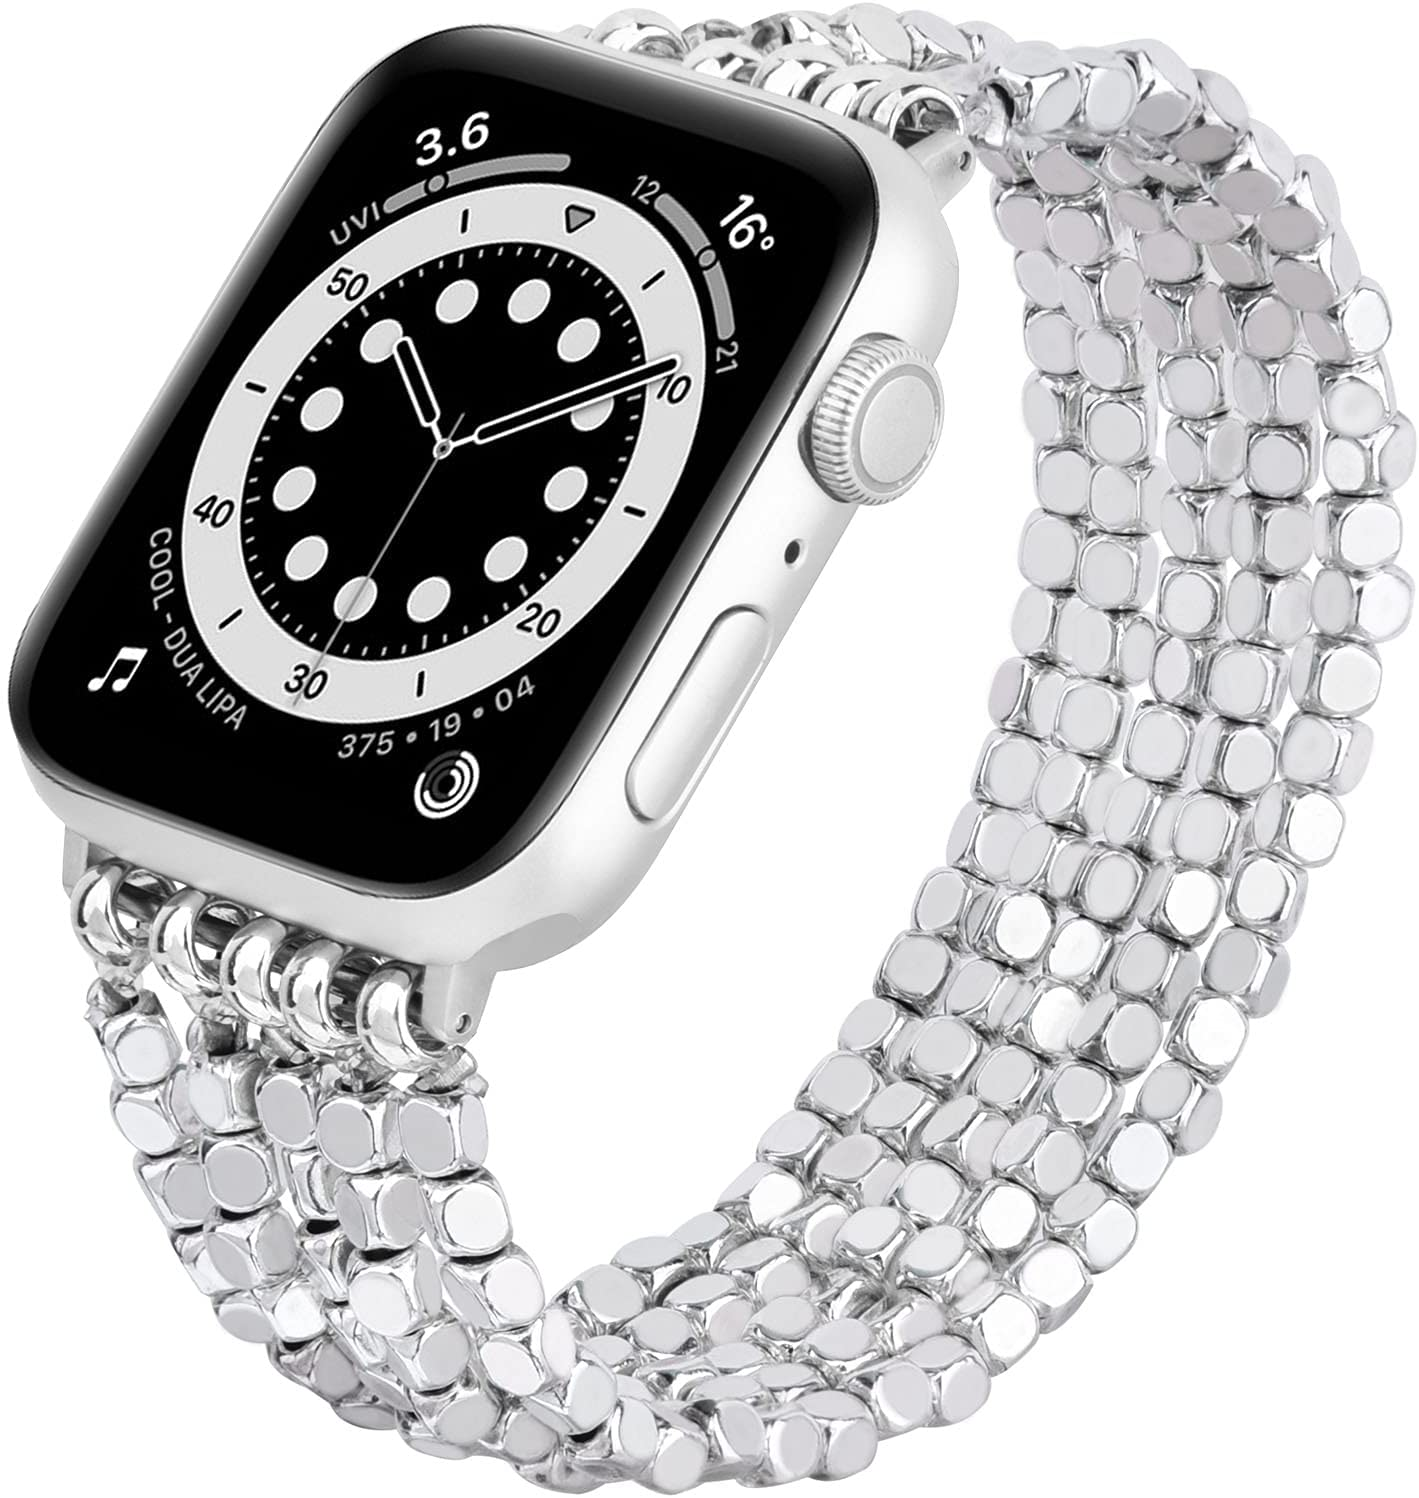 MOFREE Bracelet Compatible for Series 6 Apple Watch Band 44mm/42mm Series SE 5 Women Fashion Handmade Elastic Stretch Beads Strap for iWatch Series 4/3/2/1 42mm/44mm Replacement Silver